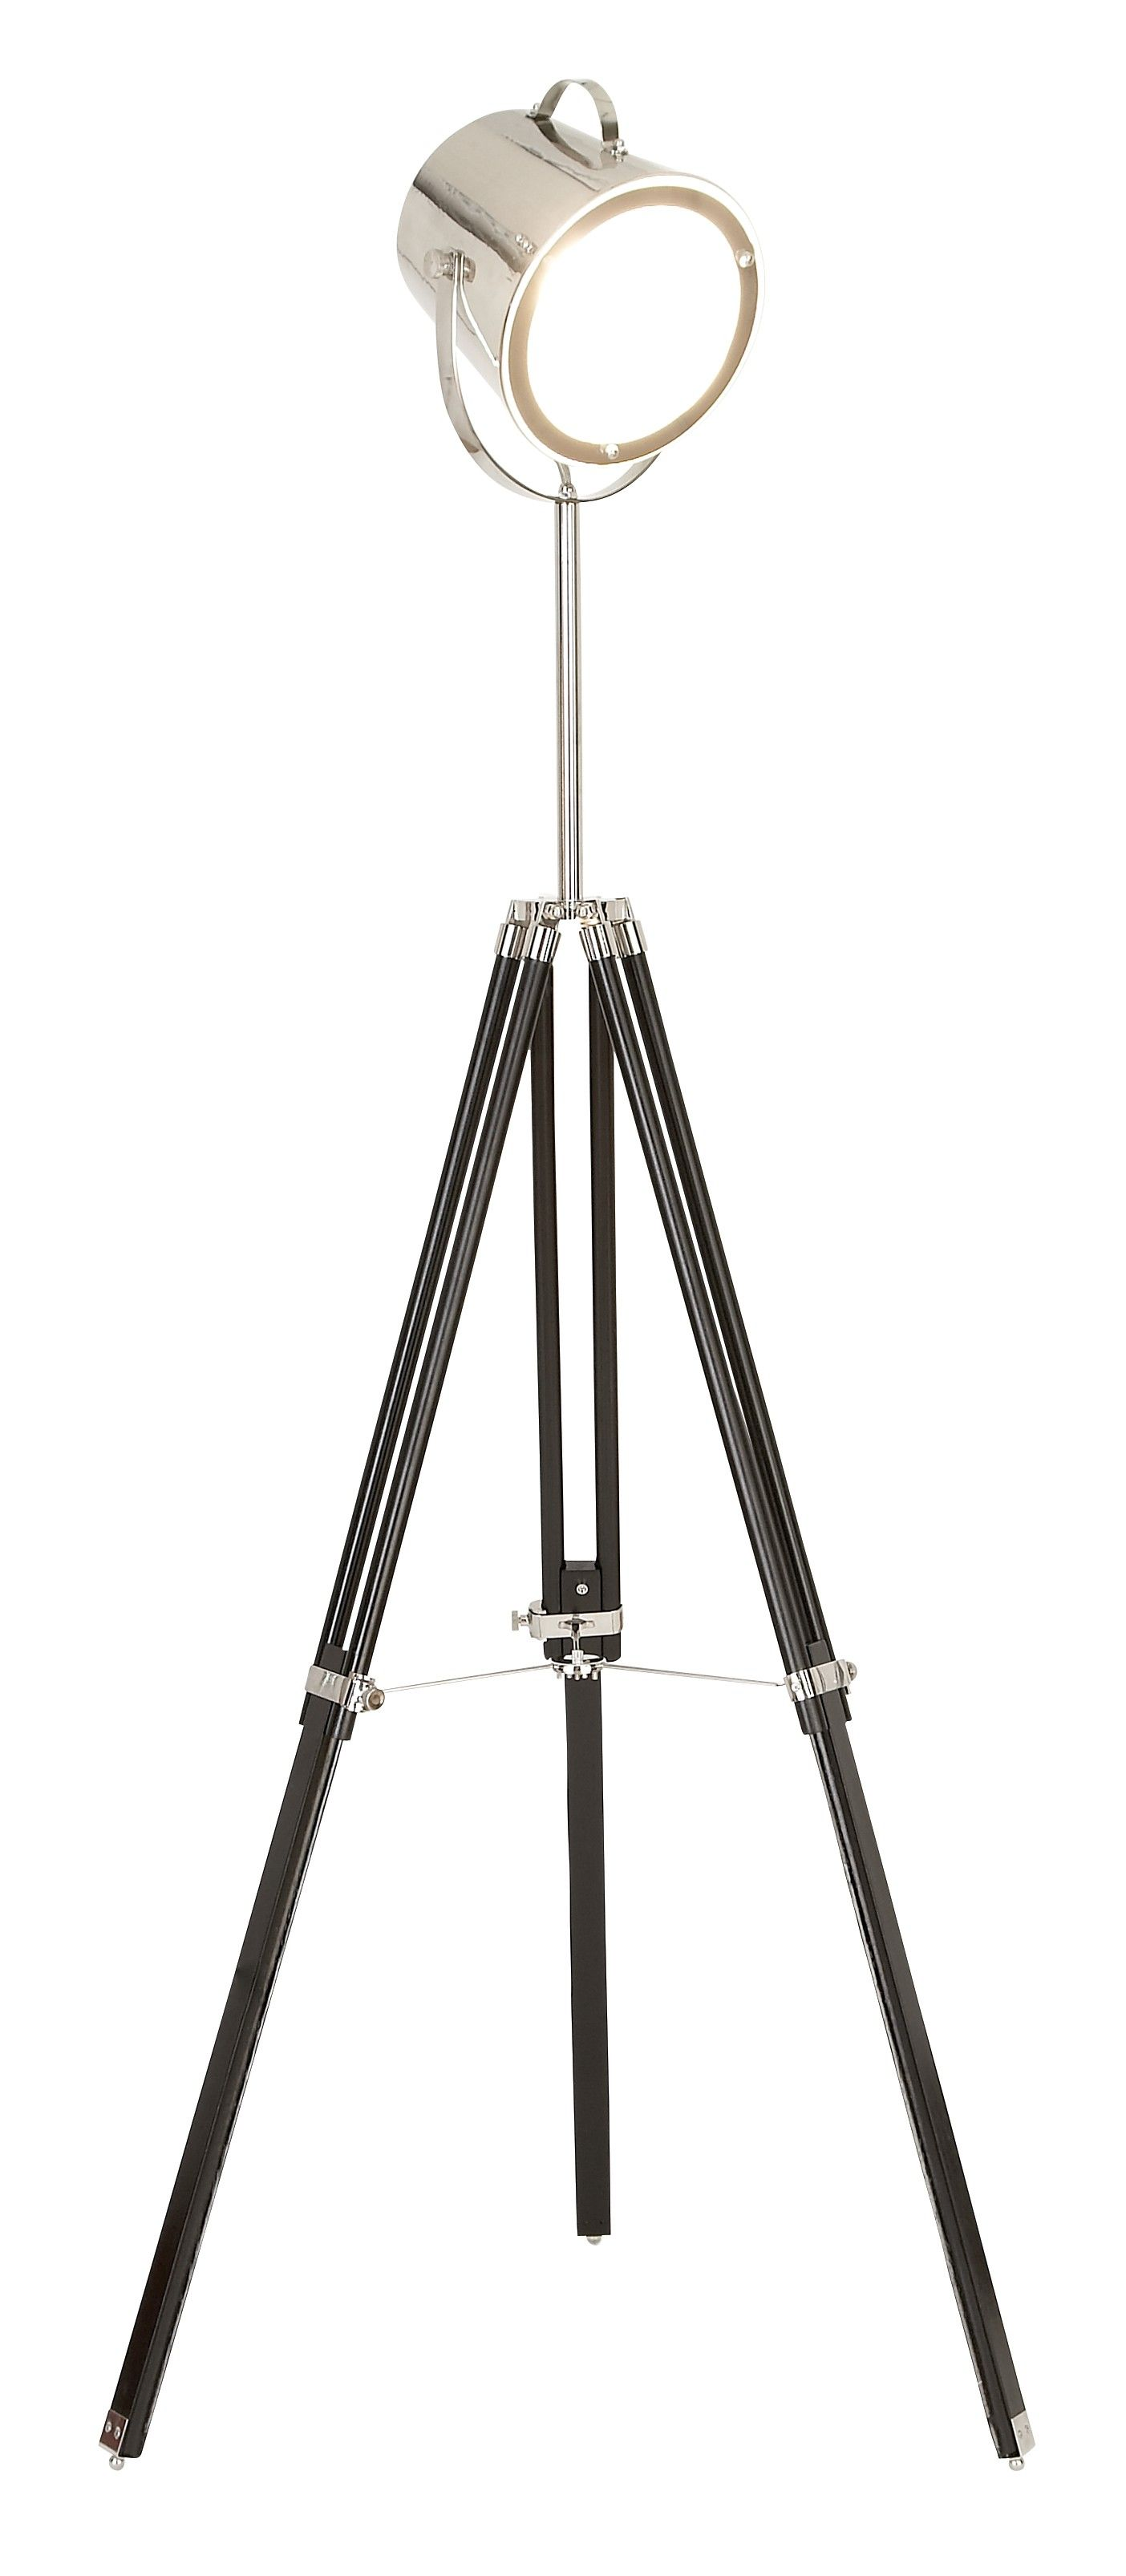 studio floor lamp lamps accents mor furniture for less accent spotlight table west elm diy bar deep seating patio large marble coffee outdoor cooler stand round oak dining faux